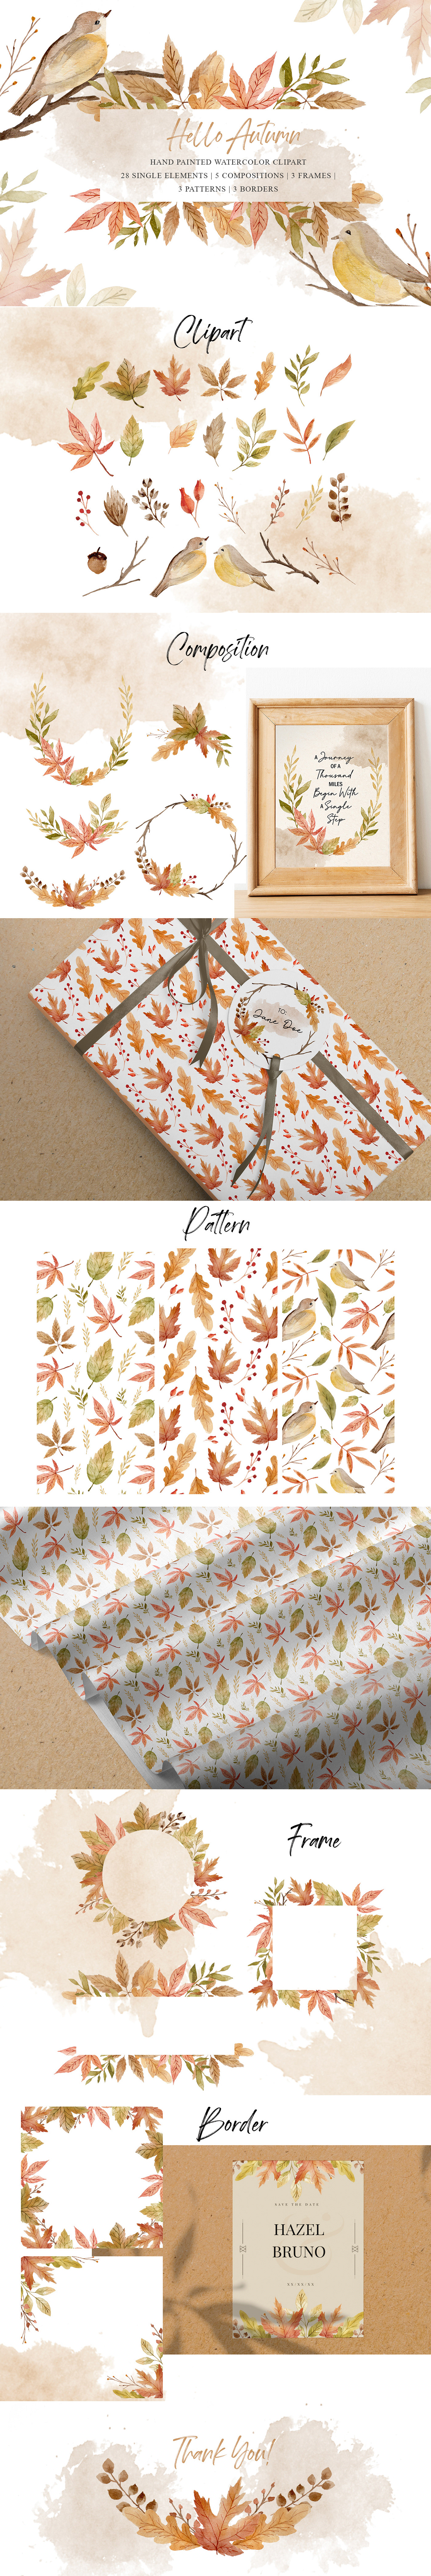 Free Autumn Watercolor Cliparts is an amazing autumn series hand painted watercolor set.